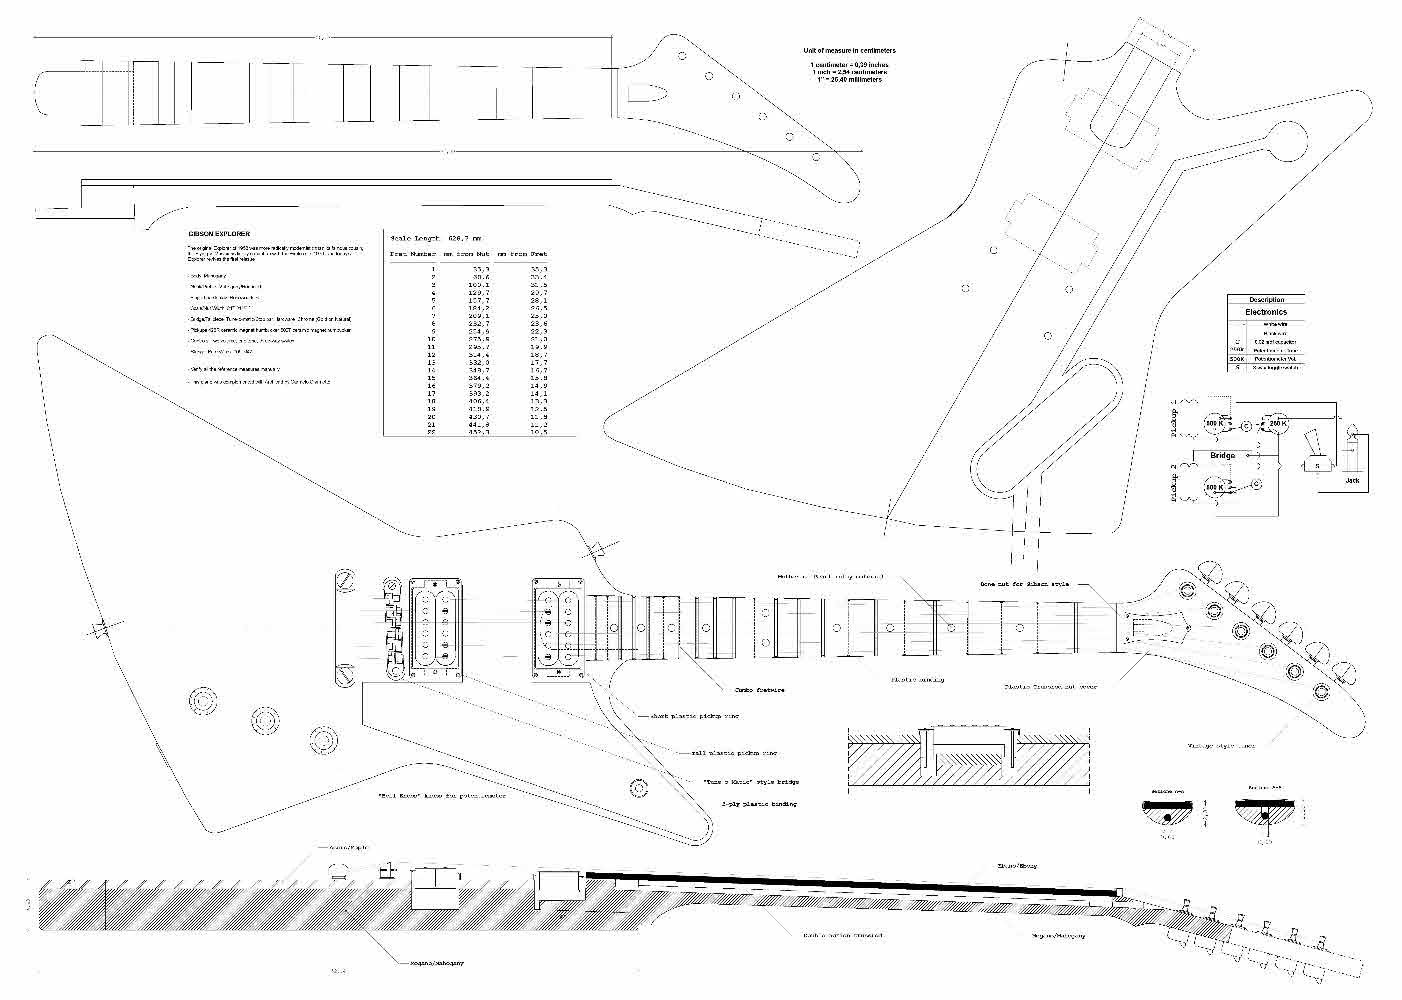 Cheap Set of 3 Gibson Electric Guitar Plans - Explorer Flying V Firebird Studio - Actual Size- Making Guitar or Framing BUY ONLY FROM SPIRIT FLUTES - Black Friday & Cyber Monday 2019